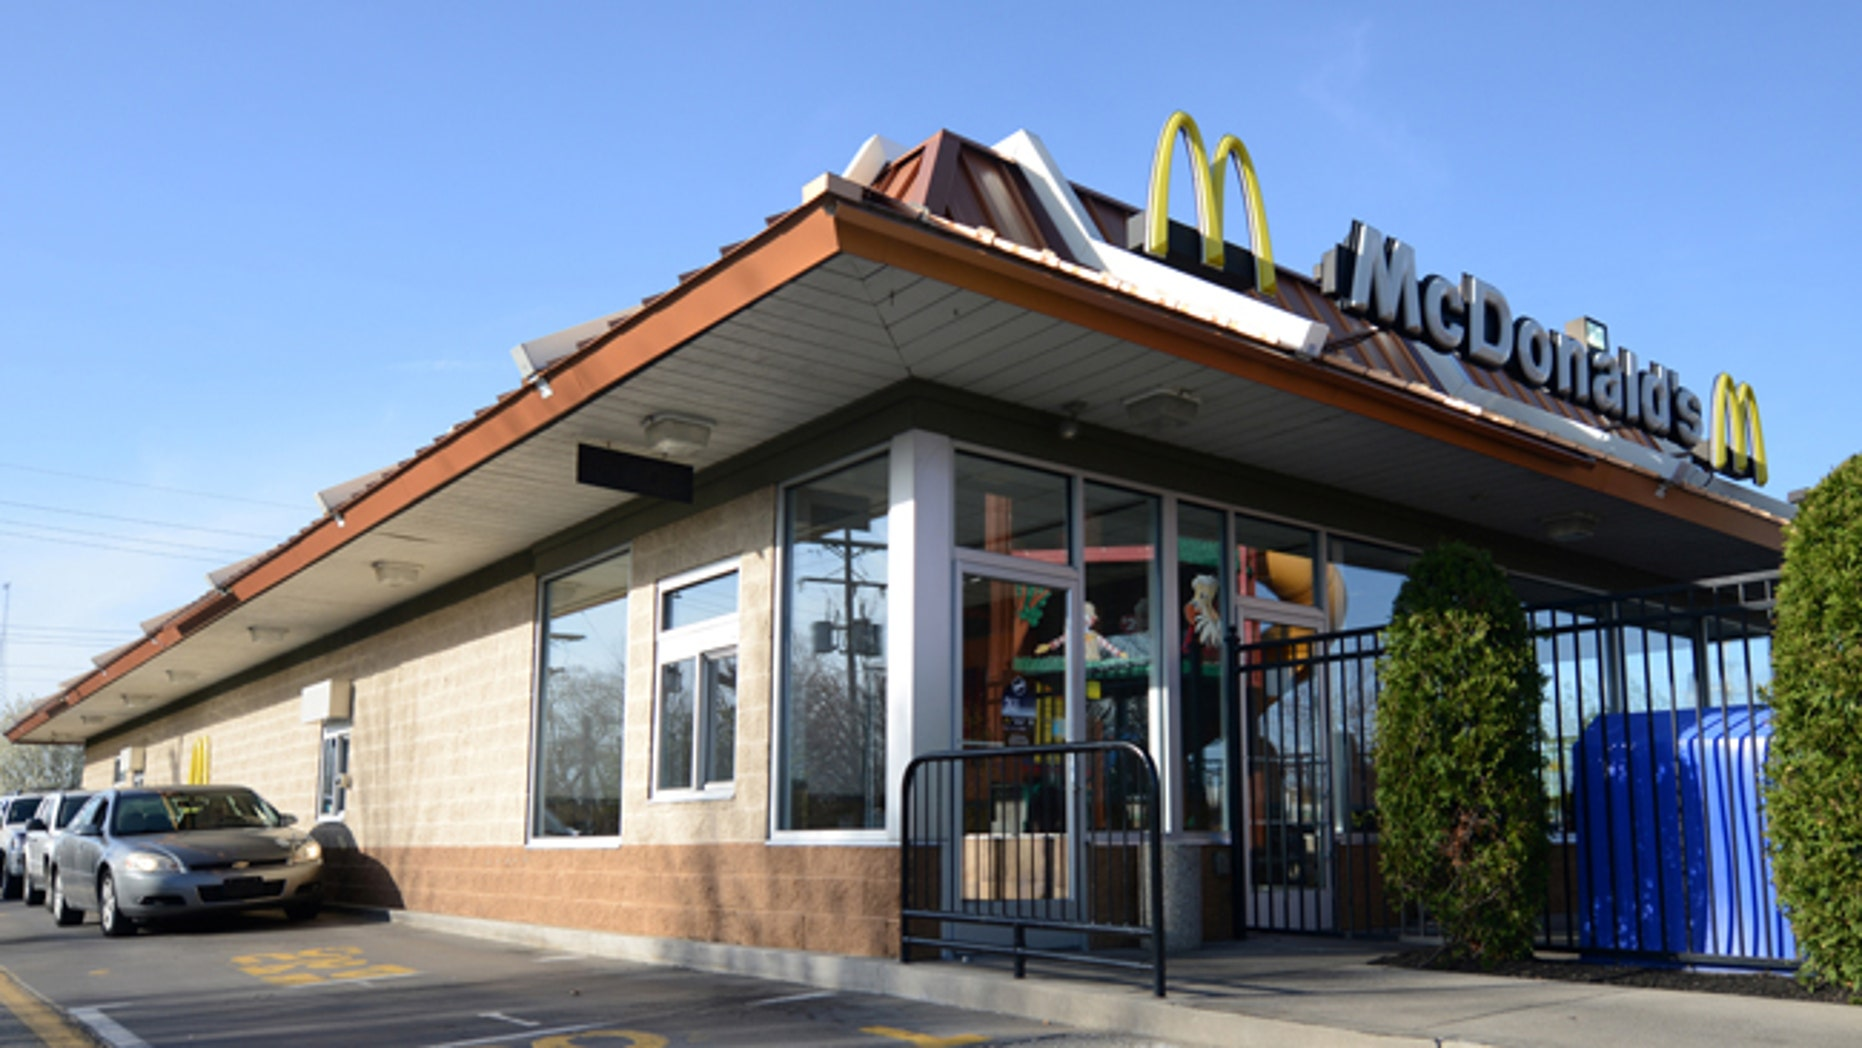 Cars approach the drive through window of a McDonald's restaurant where a member of staff had recognized the car of fugitive Steve Stephens, who police said posted a video of himself on Facebook killing an elderly man in Cleveland, in Erie, Pennsylvania, U.S. April 18, 2017.  REUTERS/Alan Freed - RTS12UTU